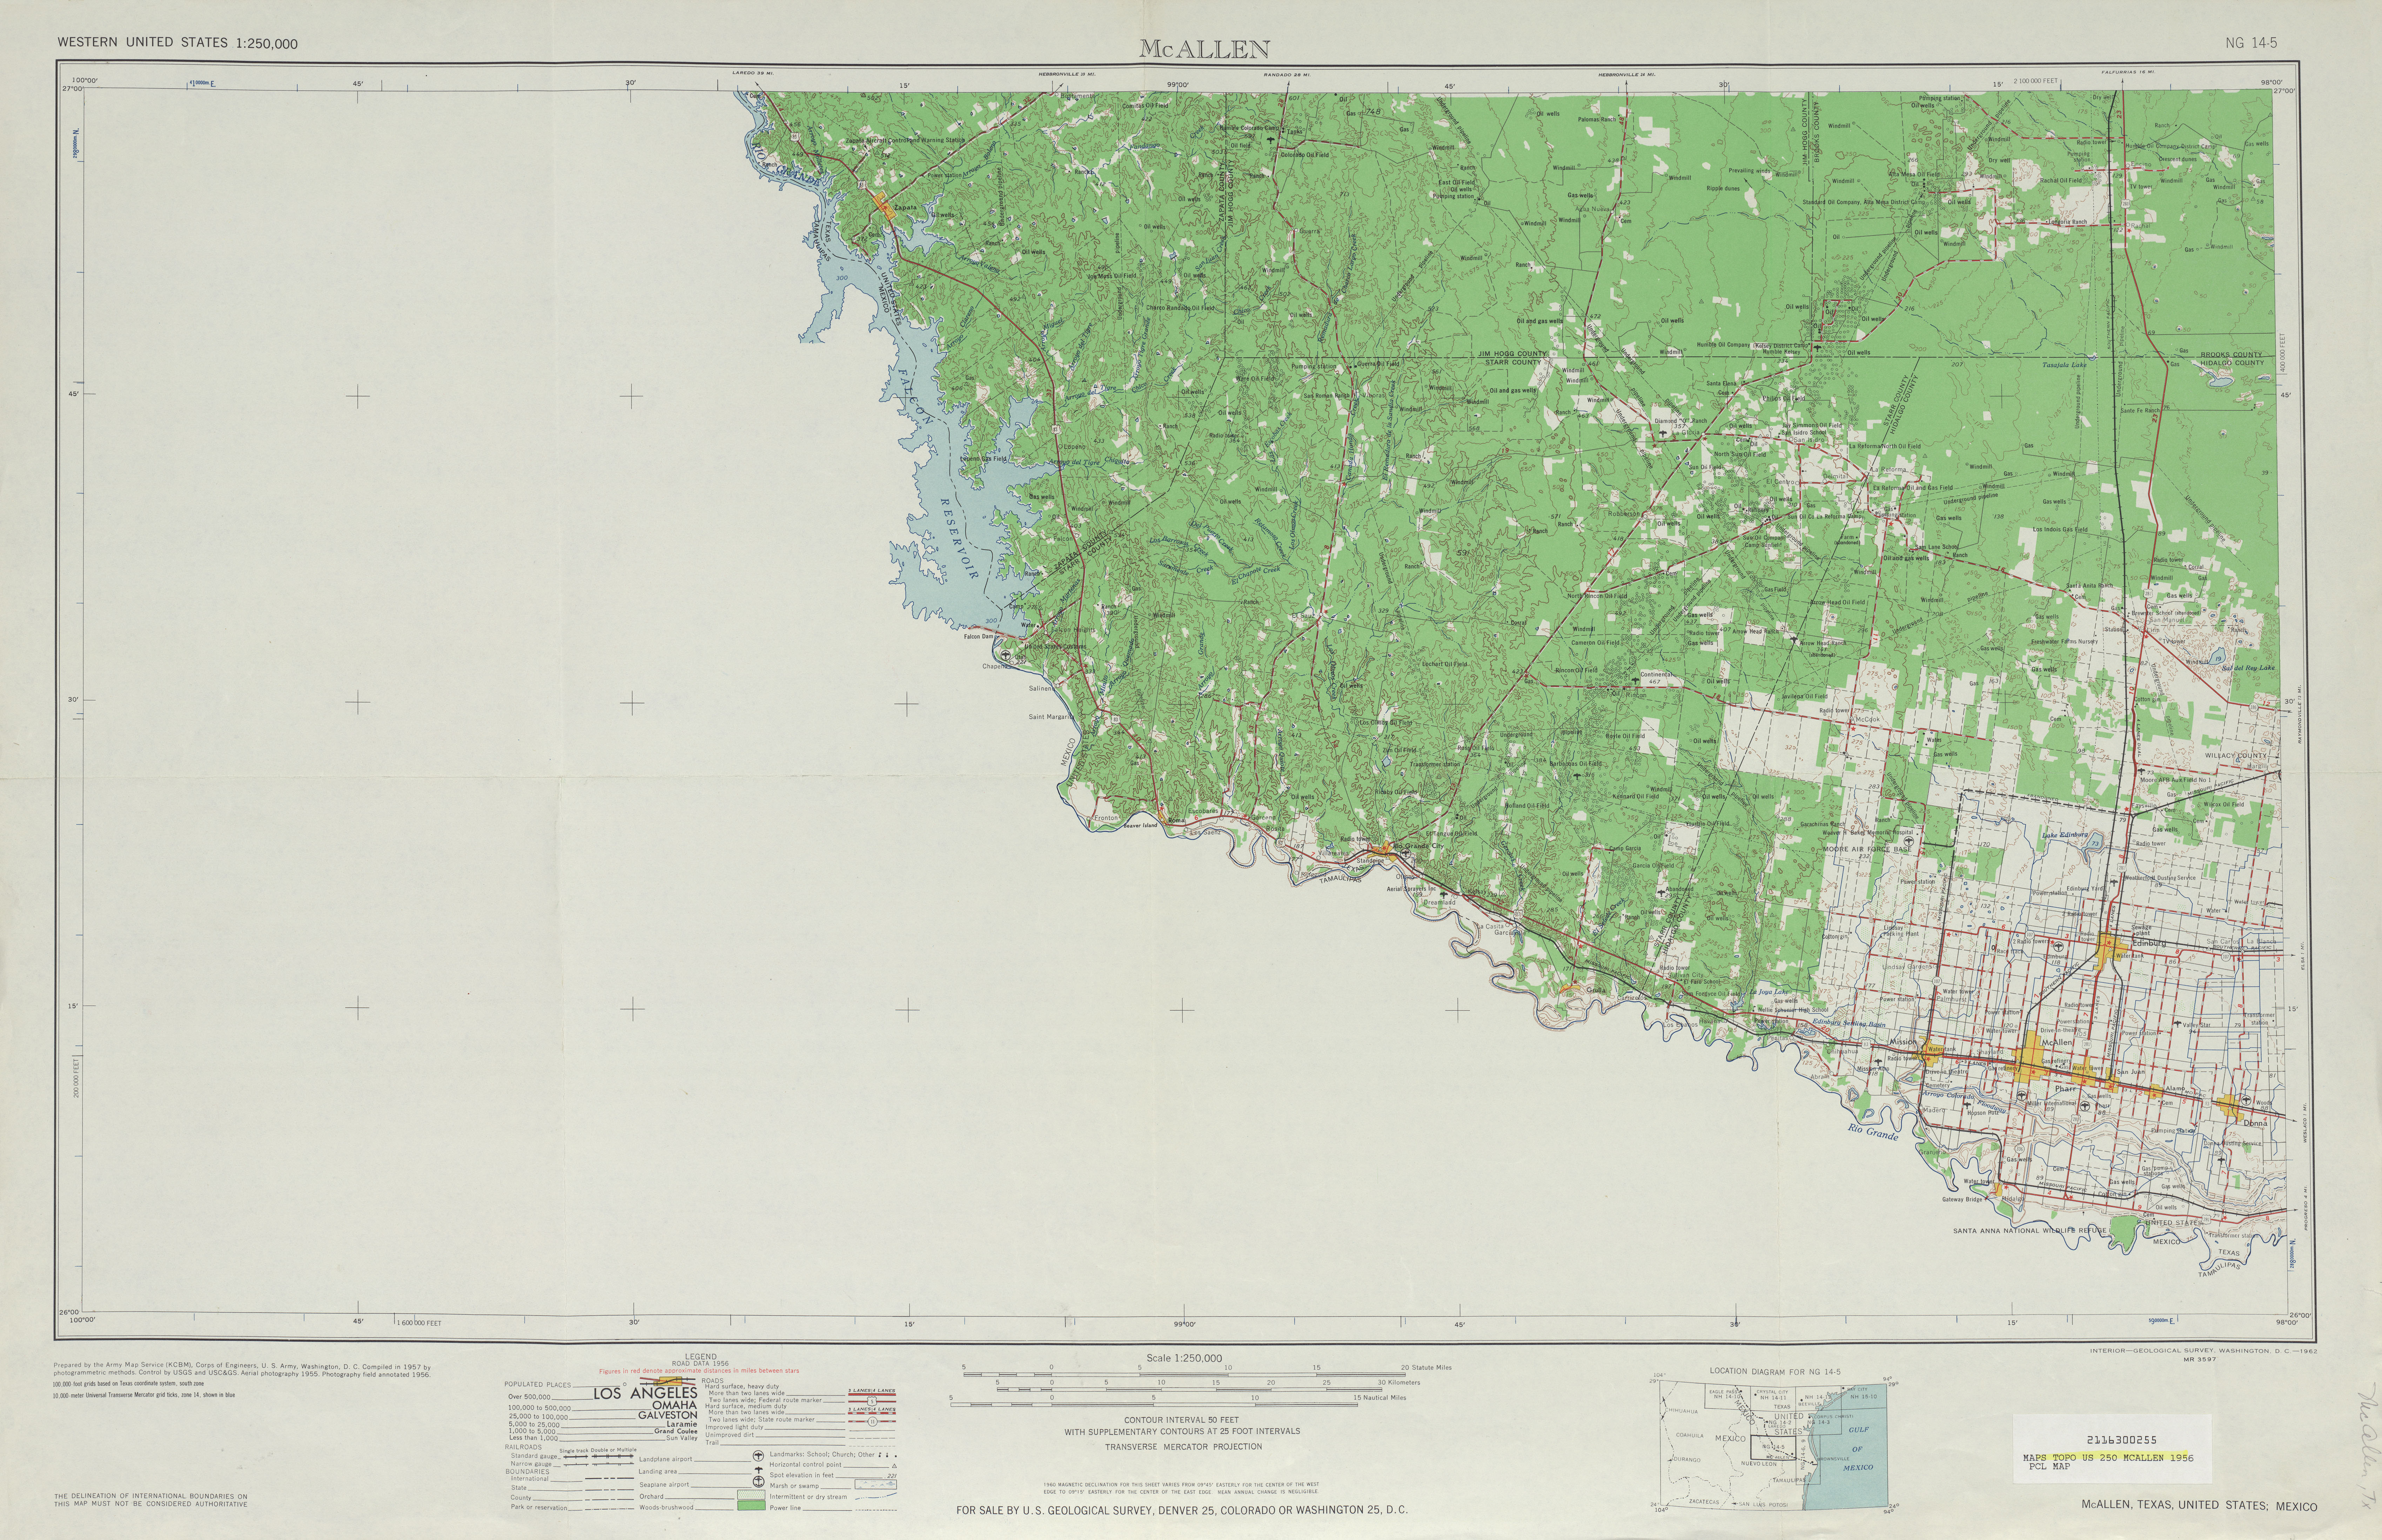 Mcallen Topographic Map Sheet, United States 1956